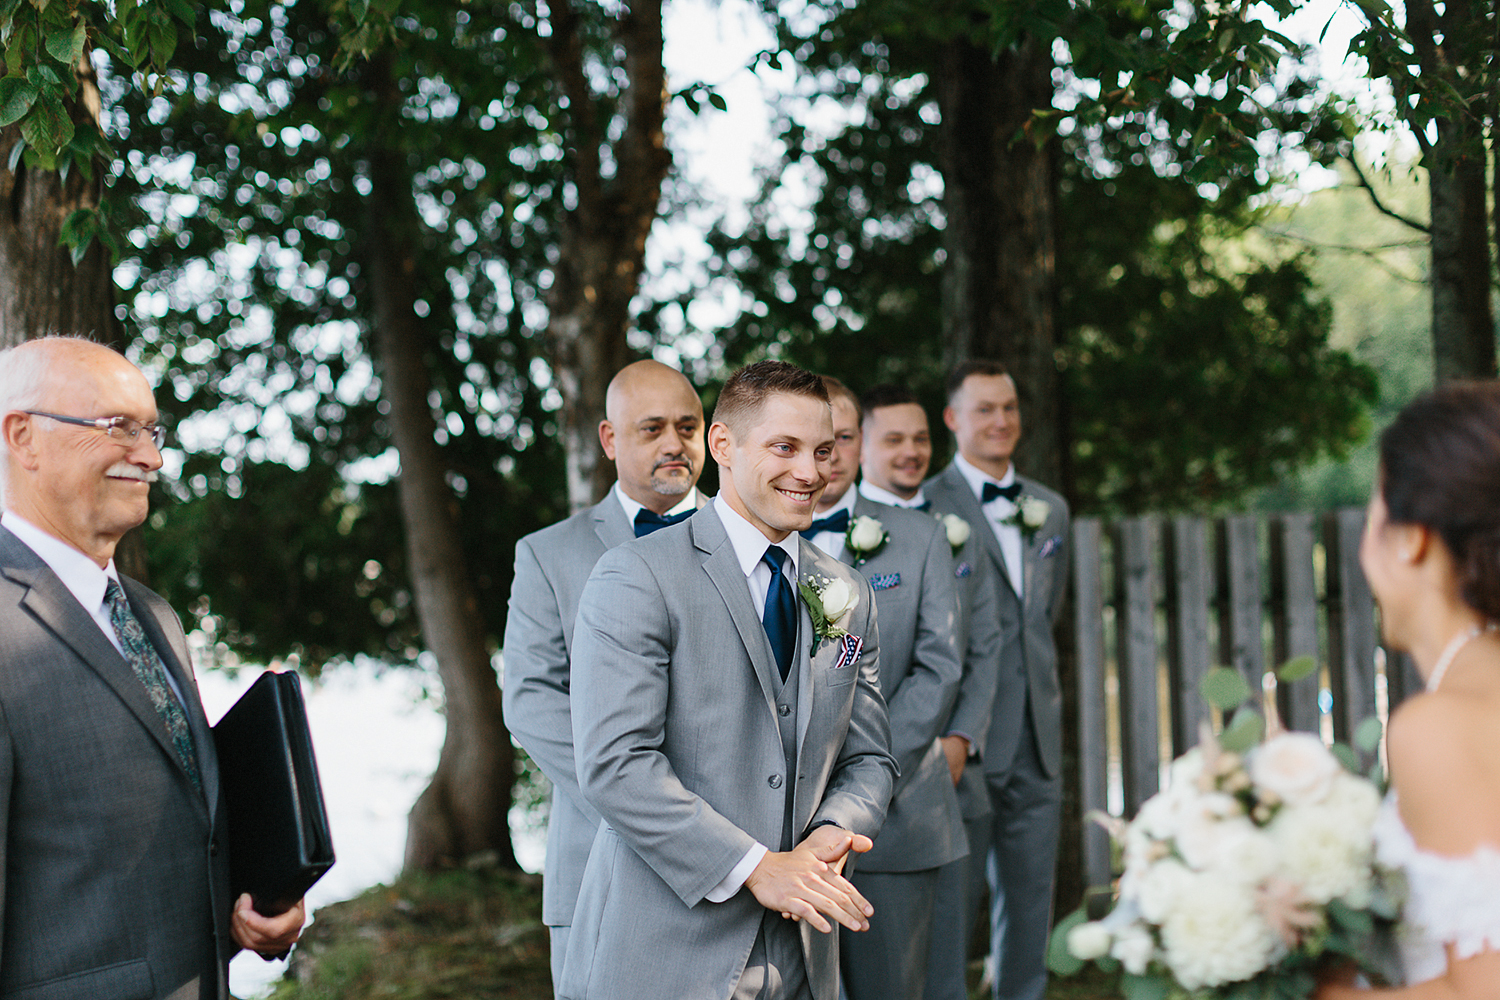 muskoka-wedding-photographer-toronto-wedding-photography-hidden-valley-resort-documentary-photojournalistic-fine-art-wedding-photography-lakeside-ceremony-cottage-country-bride-walking-down-the-aisle-candid-groom-excited-emotional.jpg